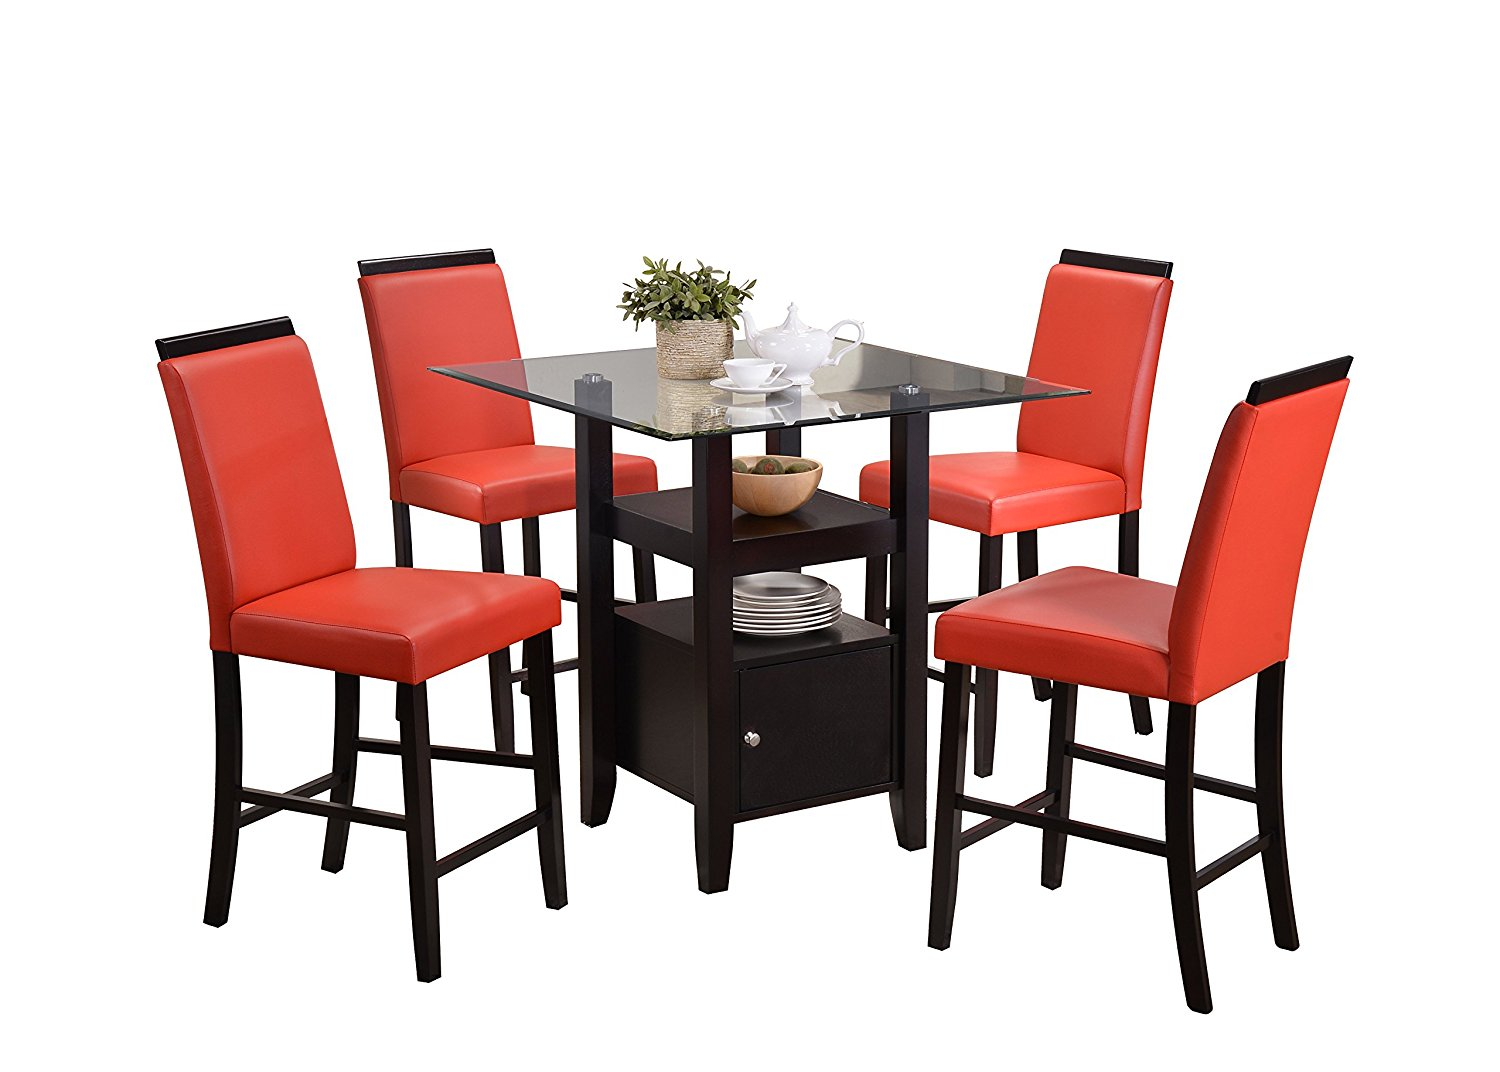 red counter height dining chairs high back plastic patio buy pilaster designs 5 piece set table 4